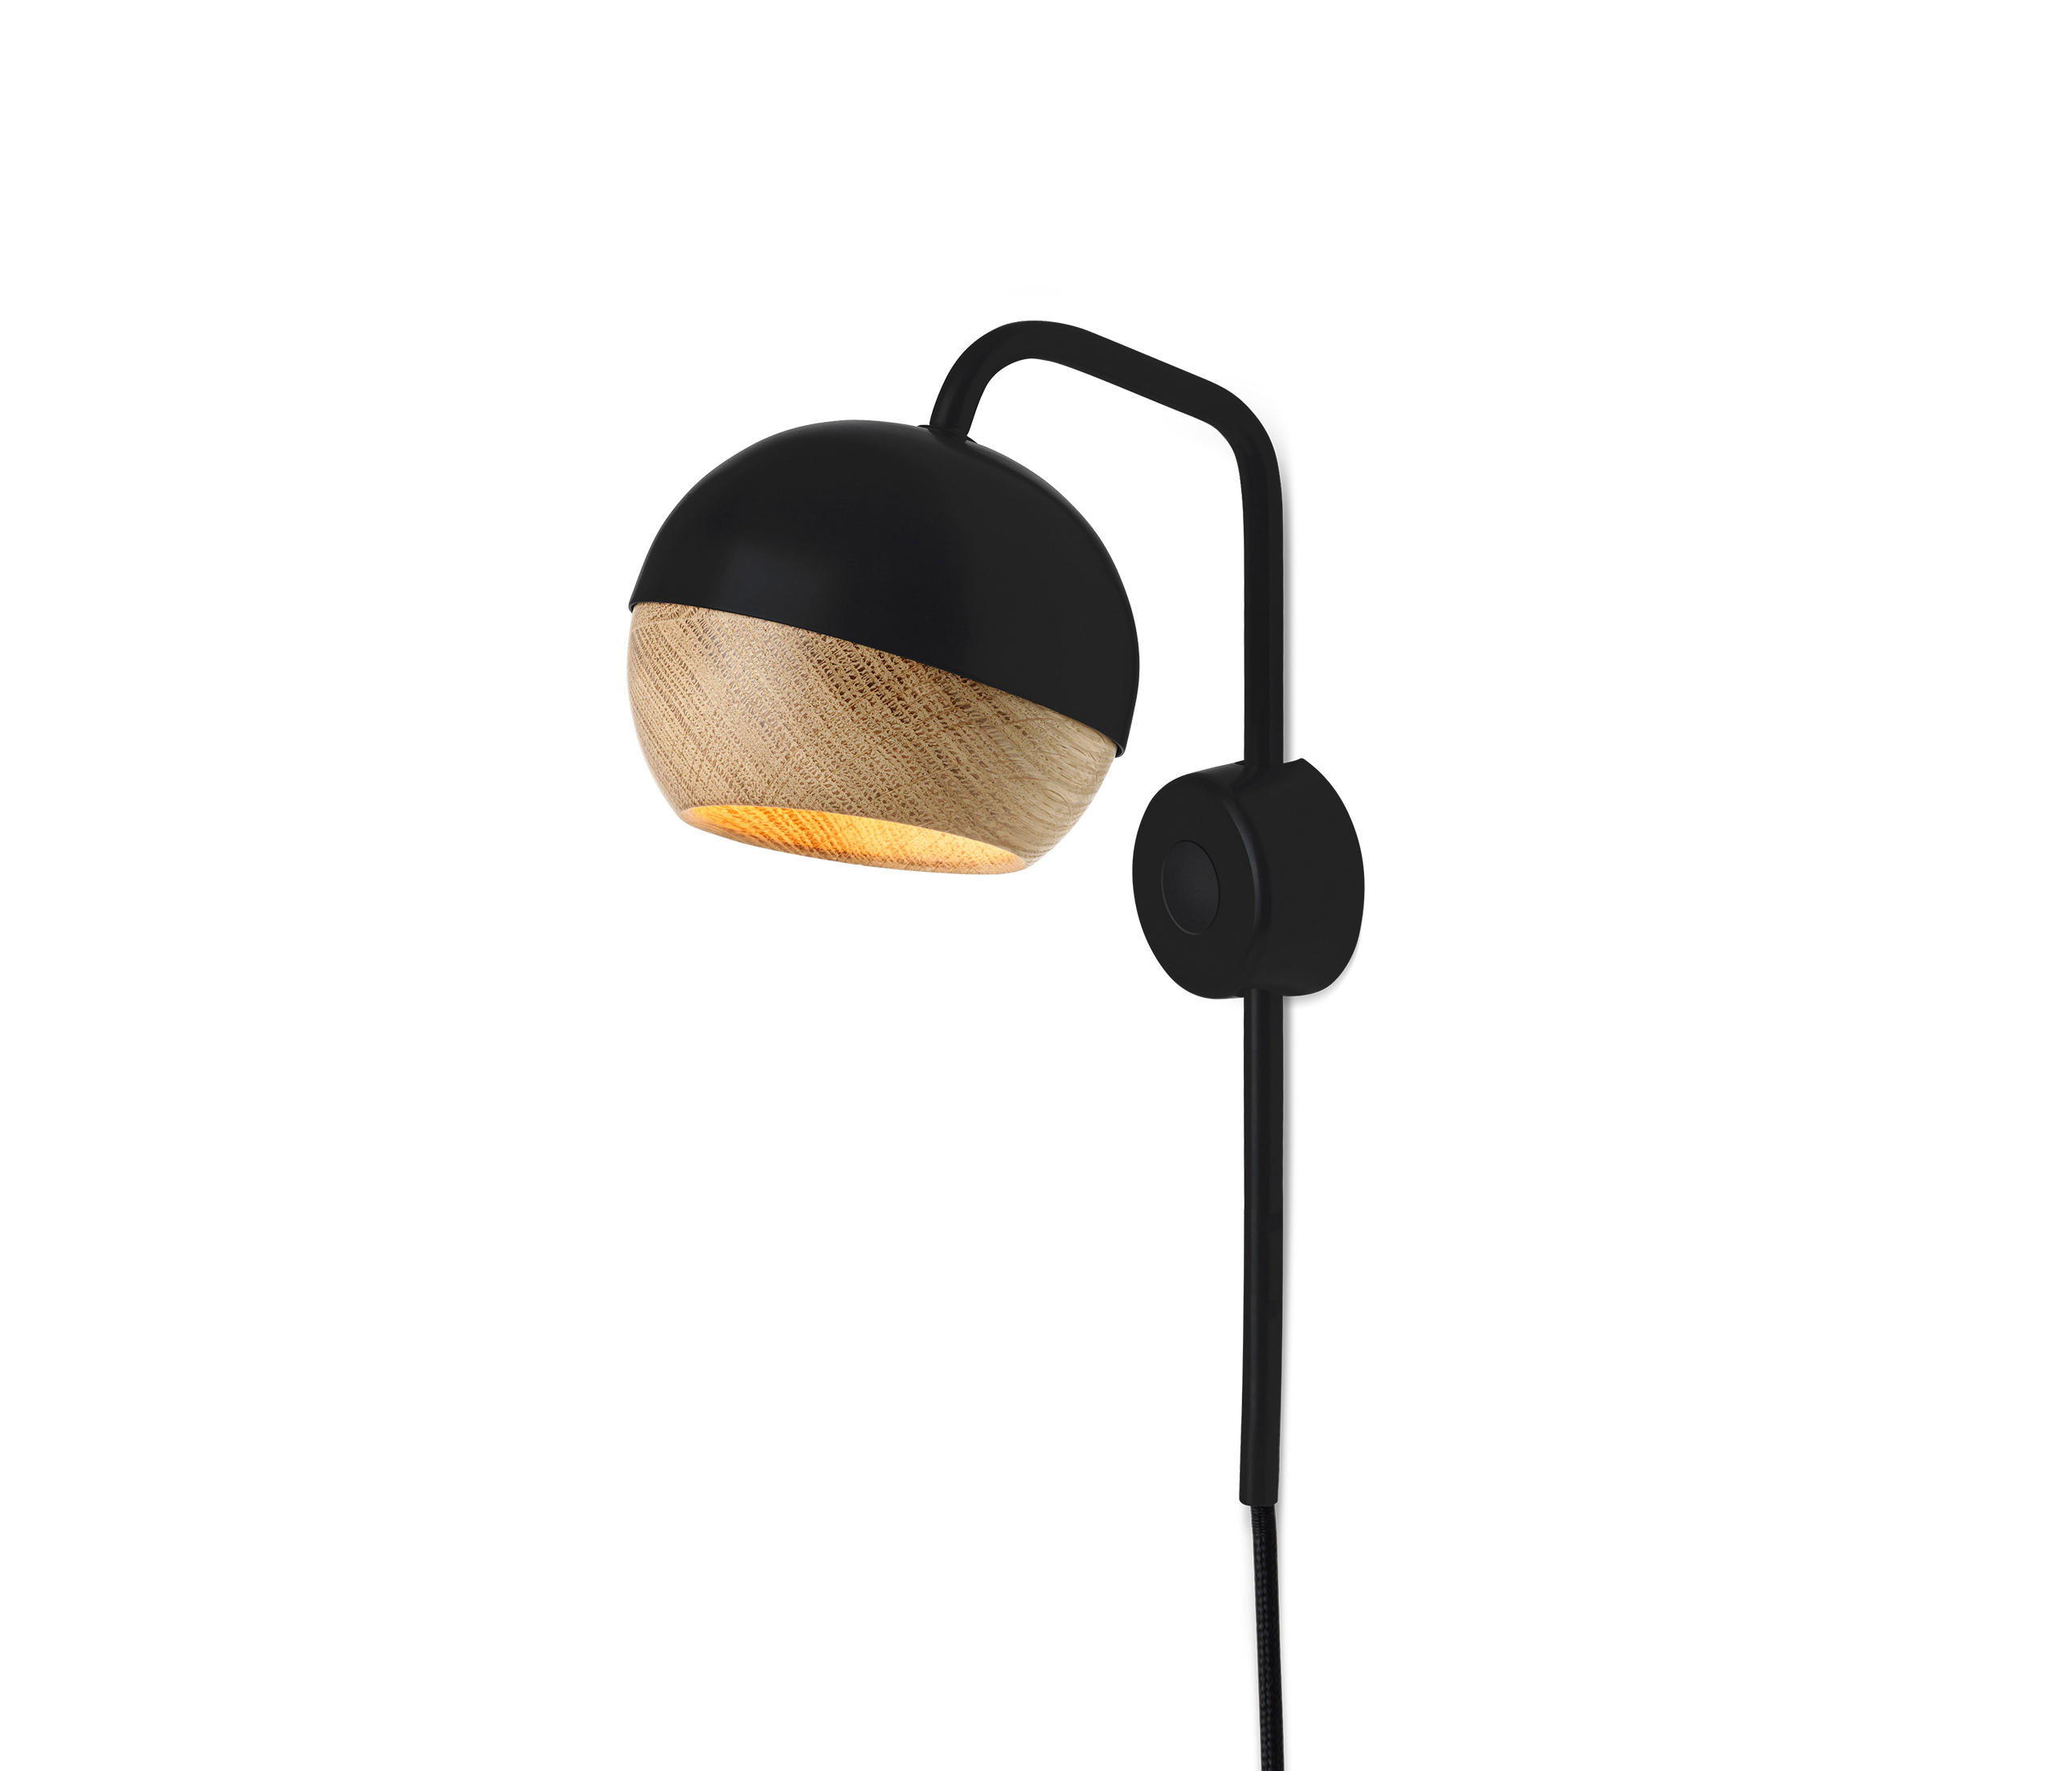 Ray Wall Lamp by PEDERJESSEN for Mater